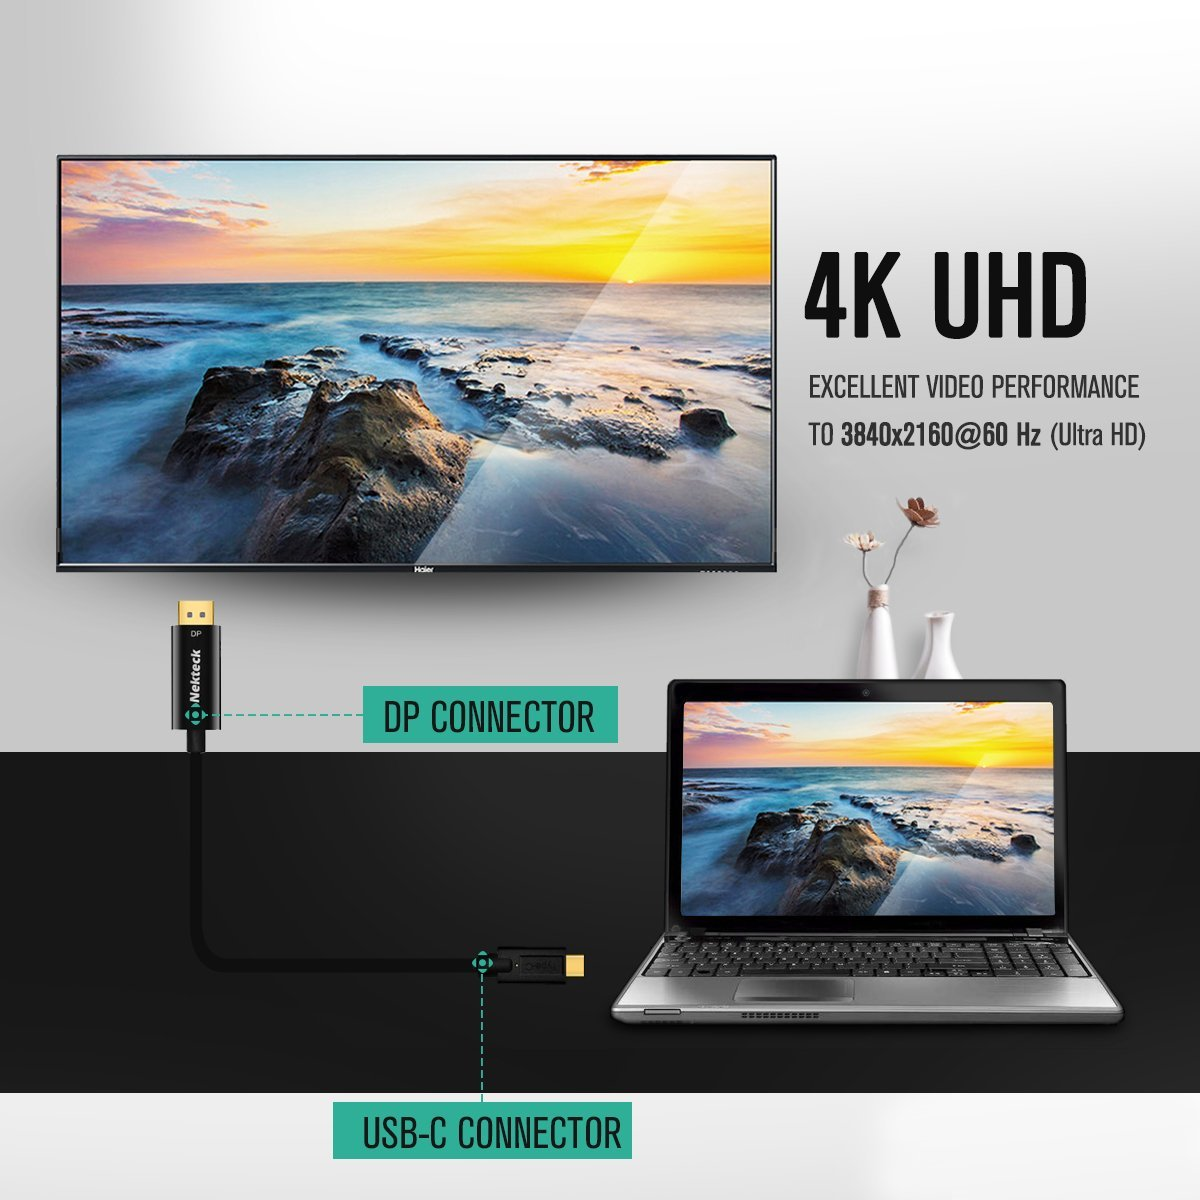 Nekteck USB C to DisplayPort Adapter Cable Thunderbolt 3 to DP 4K 6ft